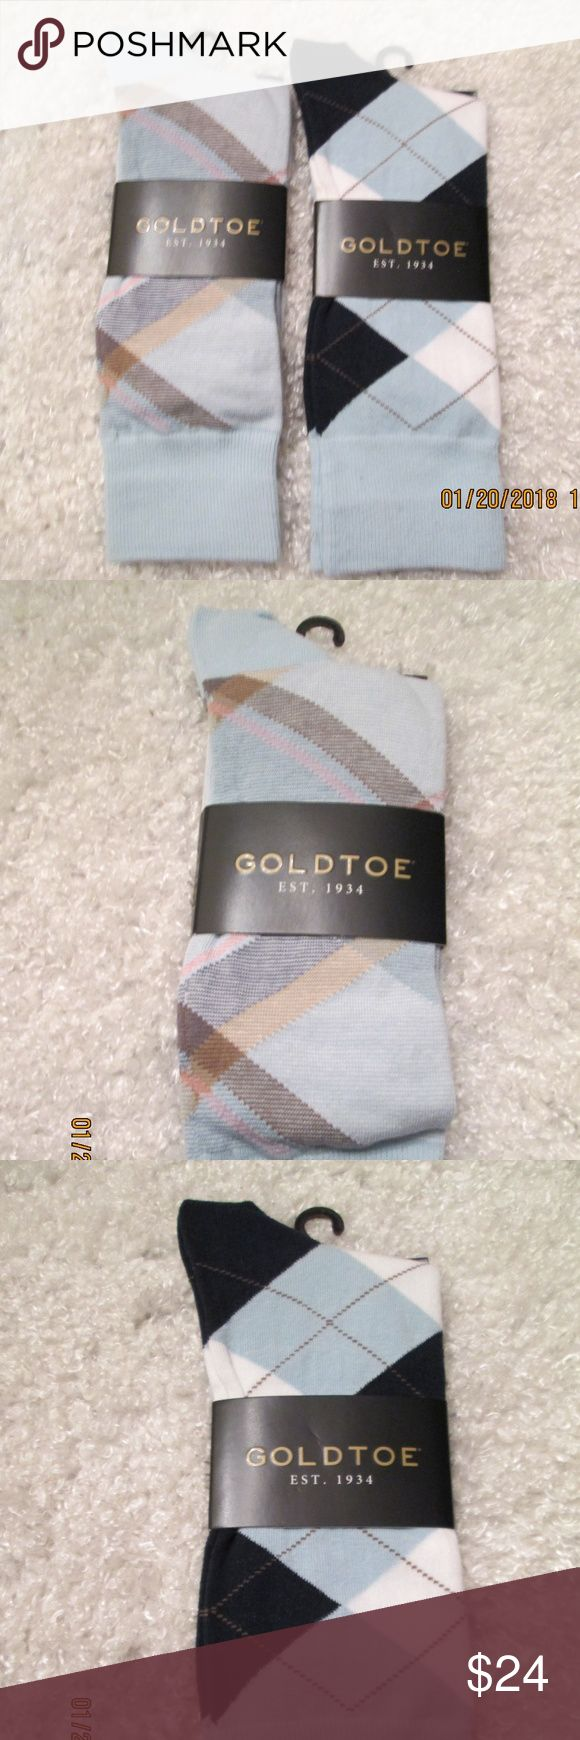 2 Pair Goldtoe Argyle & Plaid Dress Socks Brand New with Tags/Packaging 2 Pair Men's Gold Toe Crew Length Socks- Casual or Dressy 1 pair Argyle and 1 pair Plaid Steel Powder Blue, Navy, Beige, Tan, Ivory Spring/Summer Colors Gold Toe Underwear & Socks Dress Socks